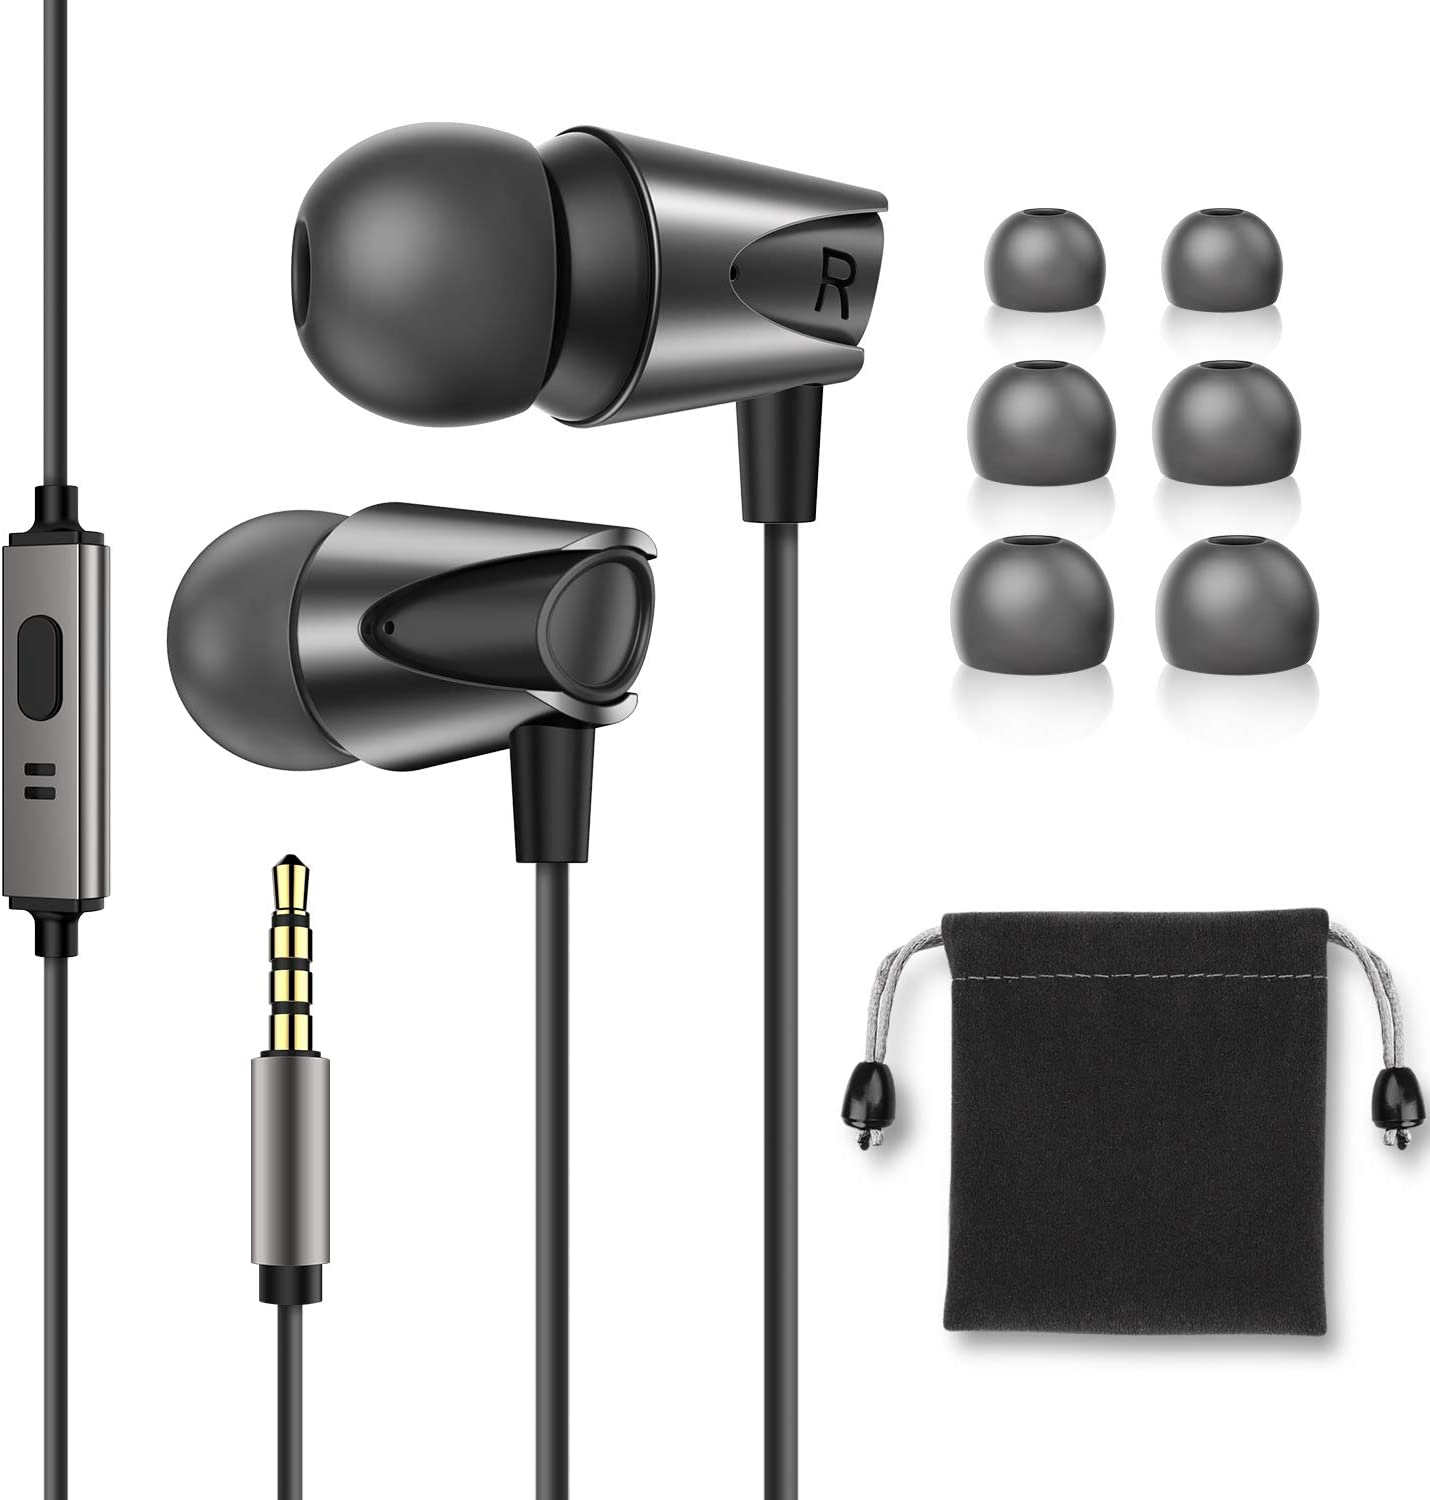 3.5MM Bass Headphones With Mic Wired Earphone Headset For PC SmartPhone MP3